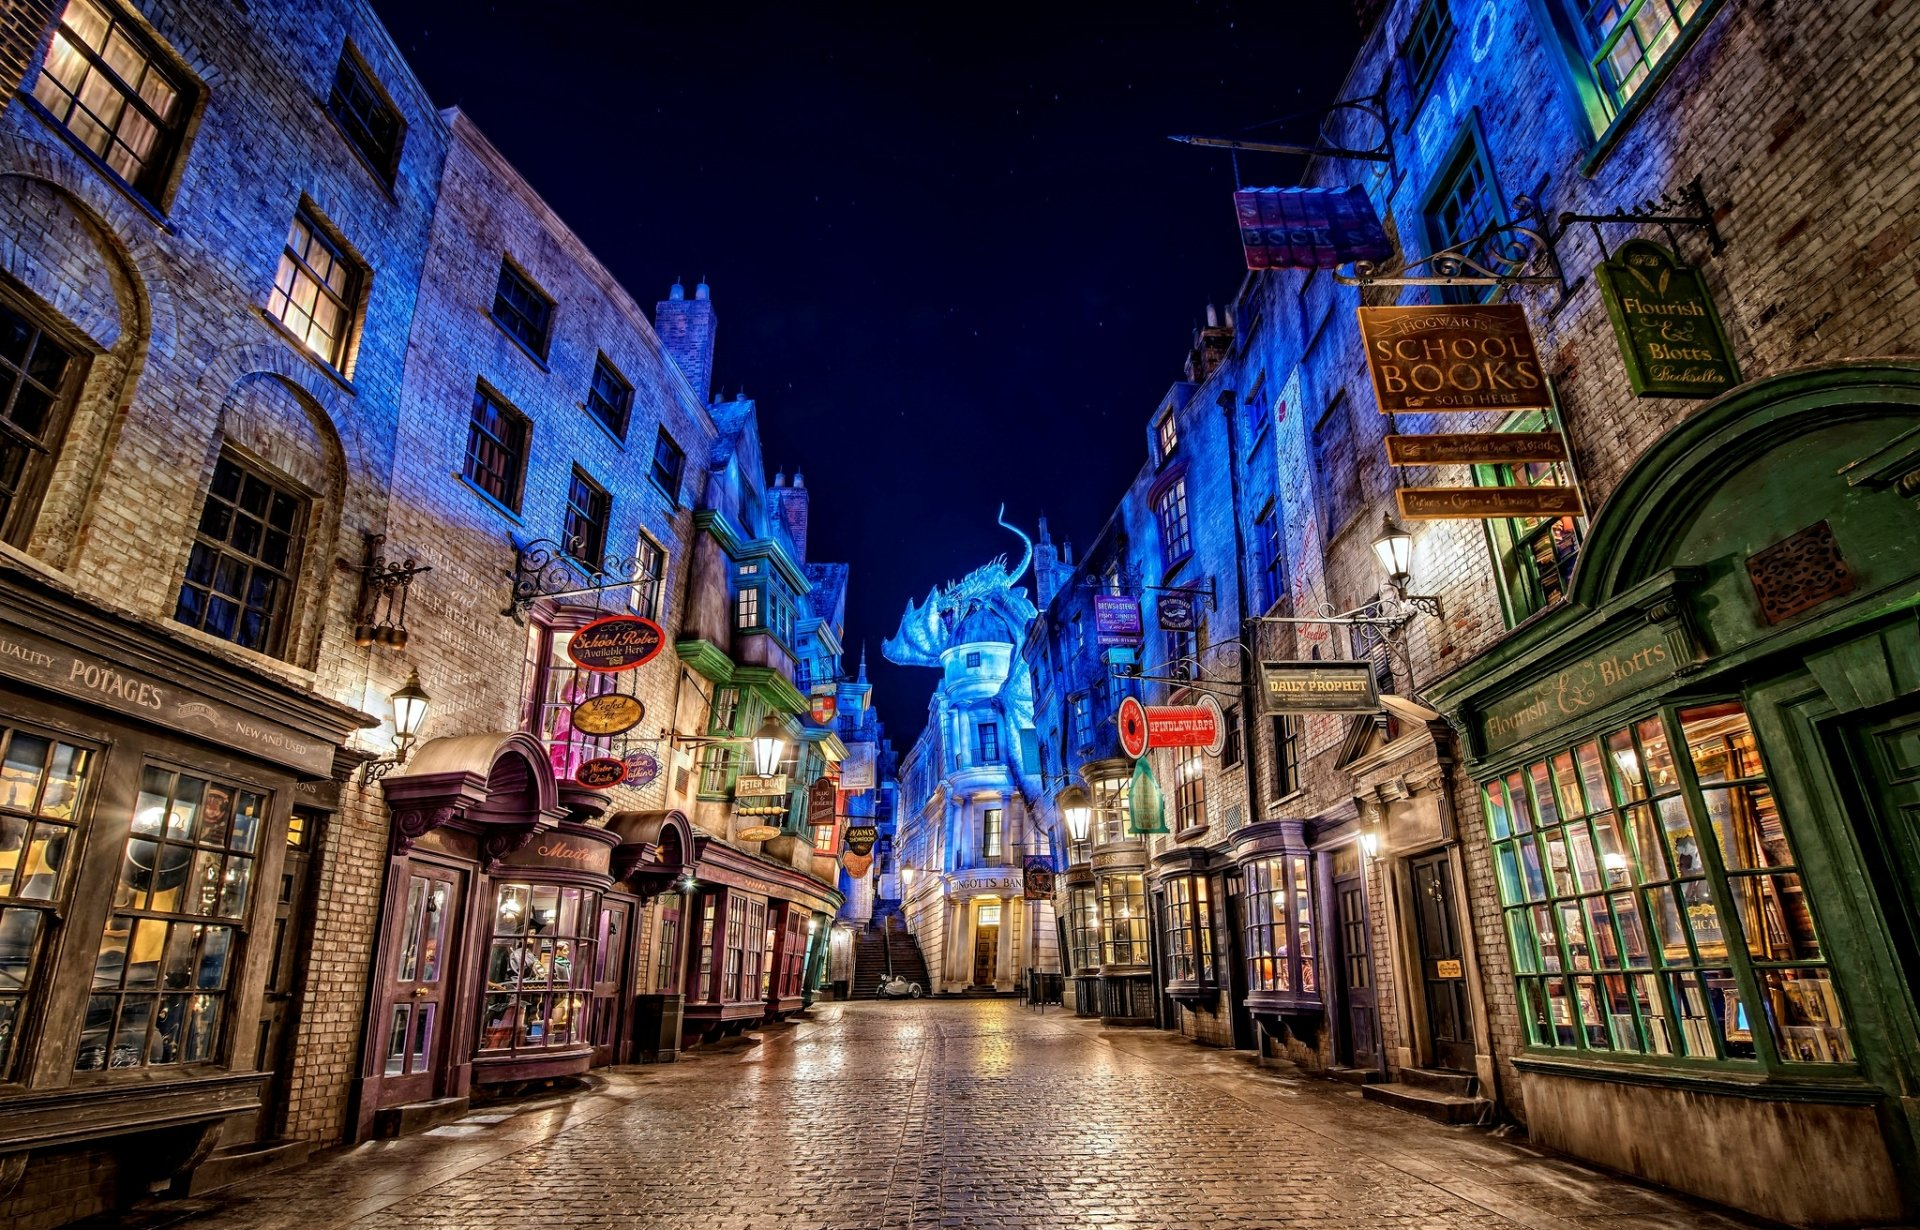 Galaxy Wallpaper Hd Iphone 6 Plus Diagon Alley From Harry Potter At Universal Studios Hd